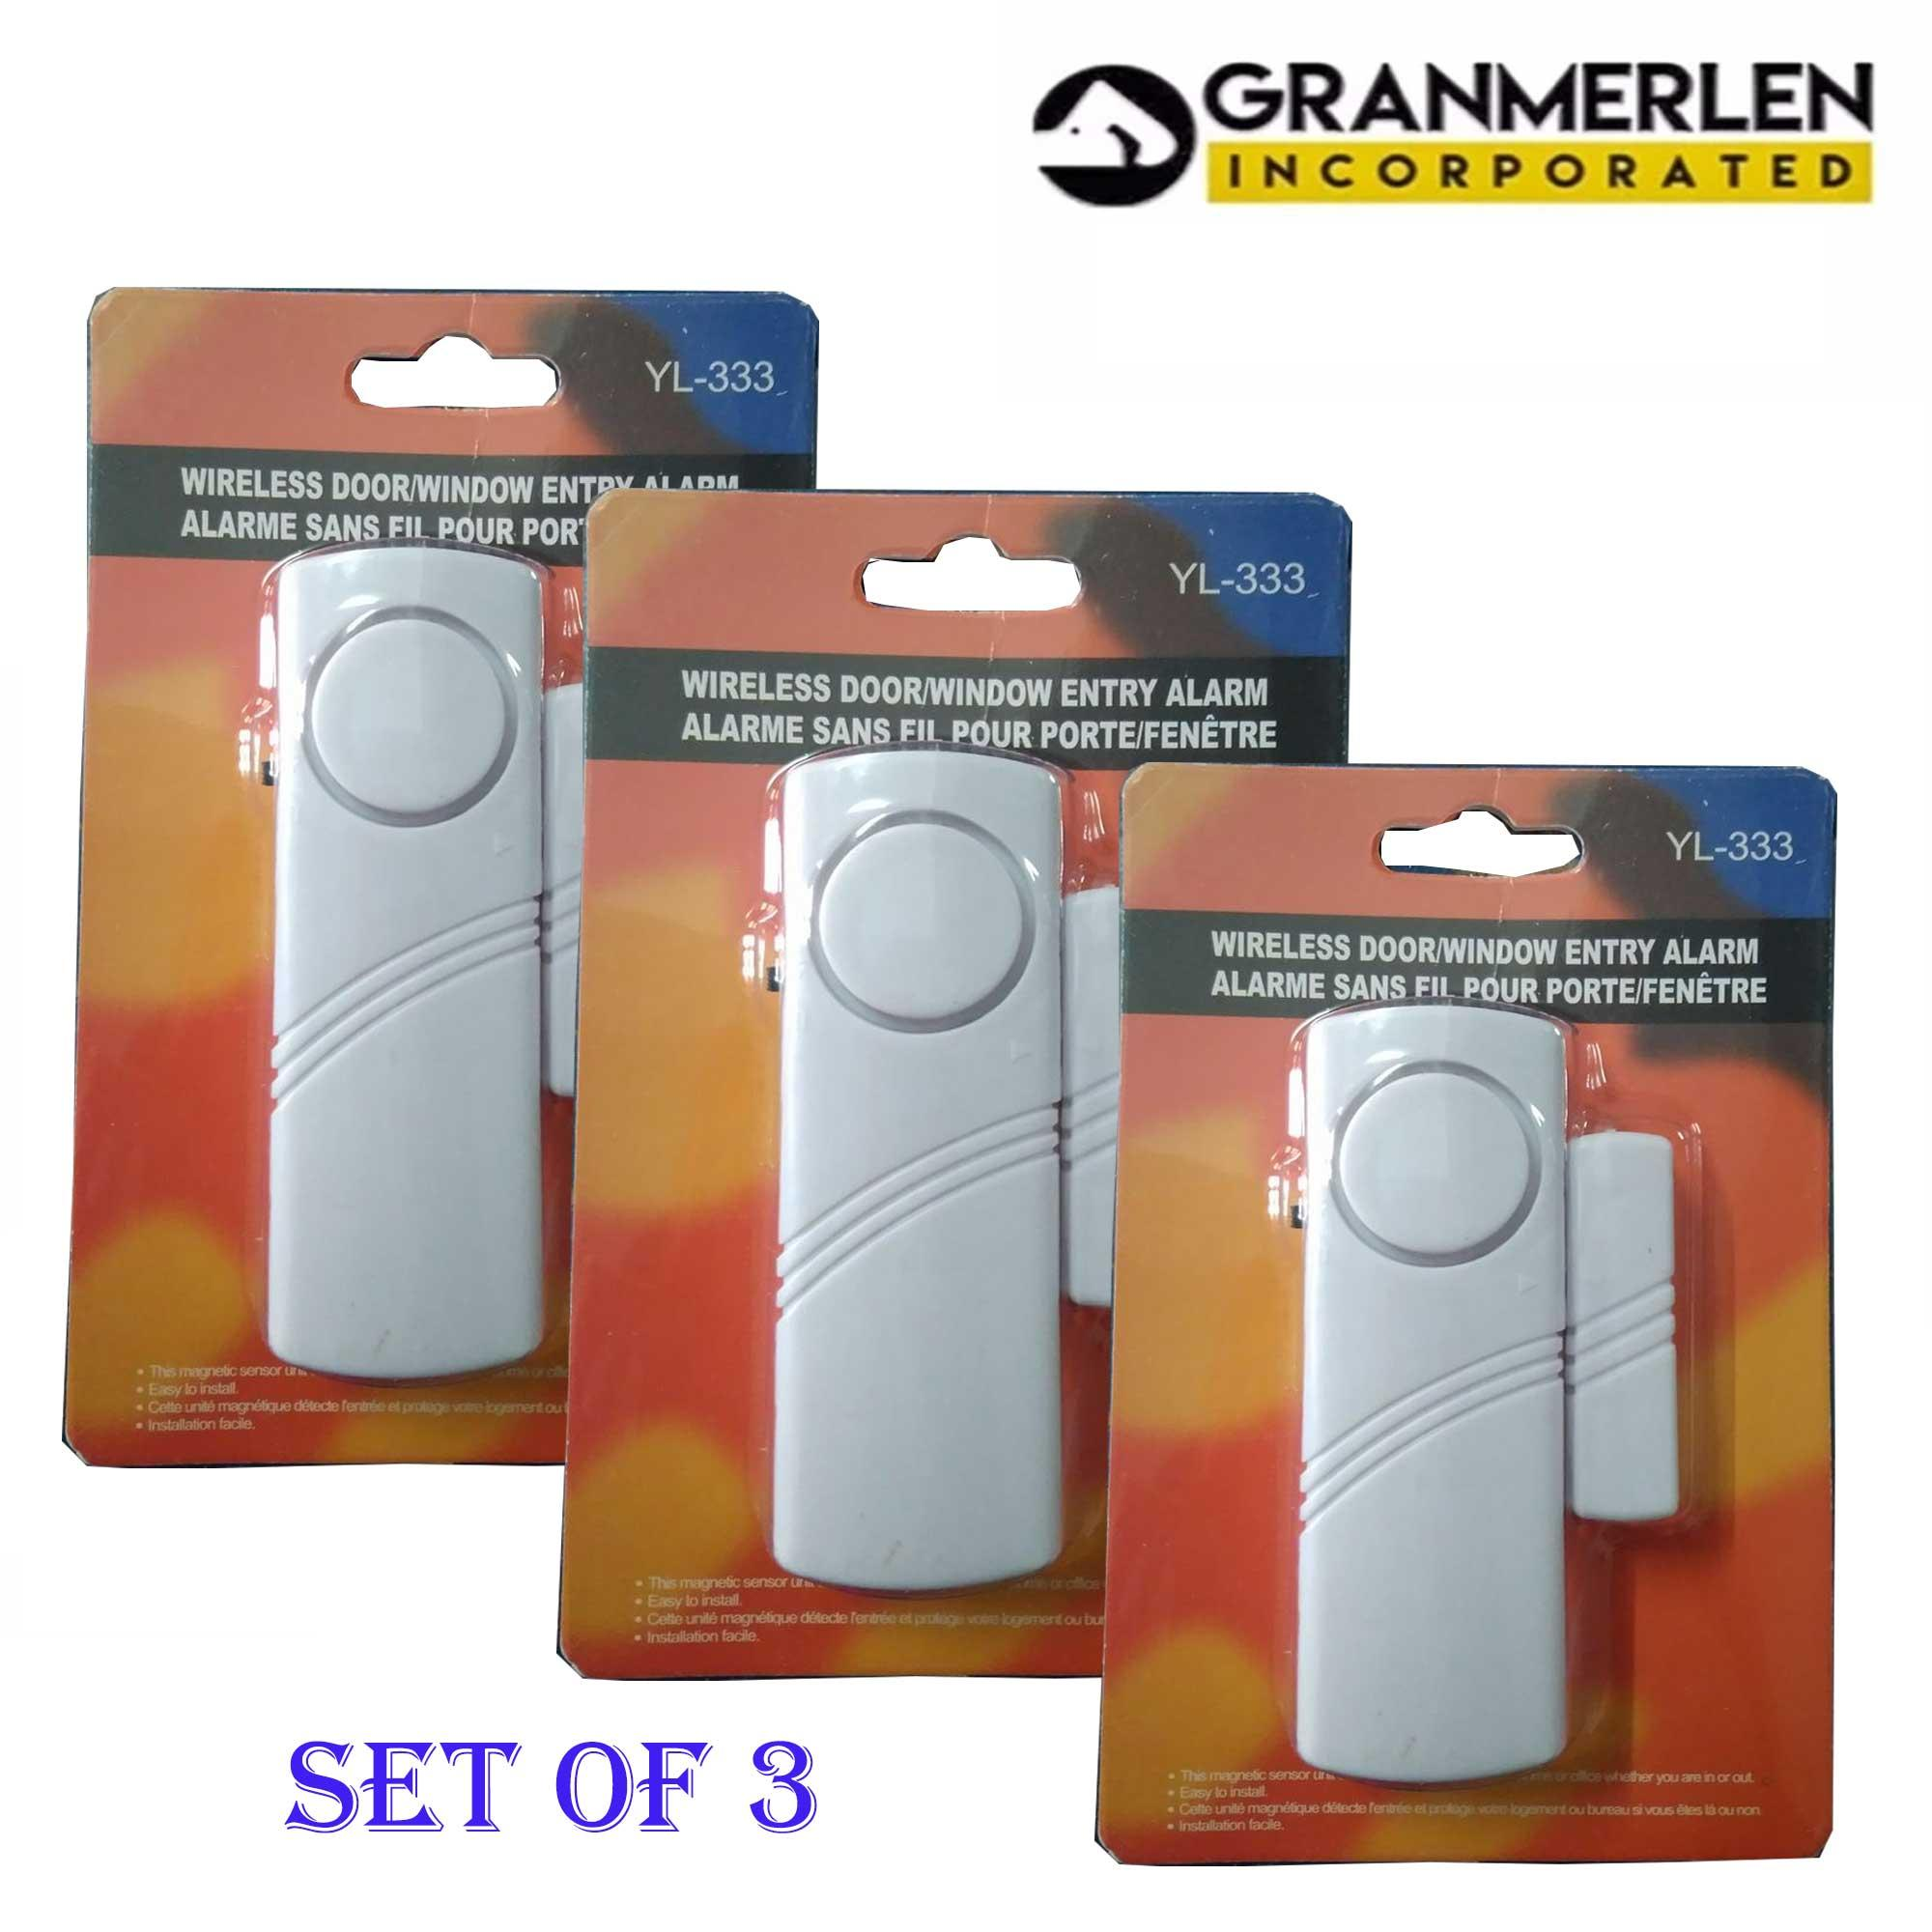 Home Security For Sale House Alarm Prices Brands Review In Fridge Door Circuit Tiny Guard With Yl 333 Wireless Window Entry Set Of 3